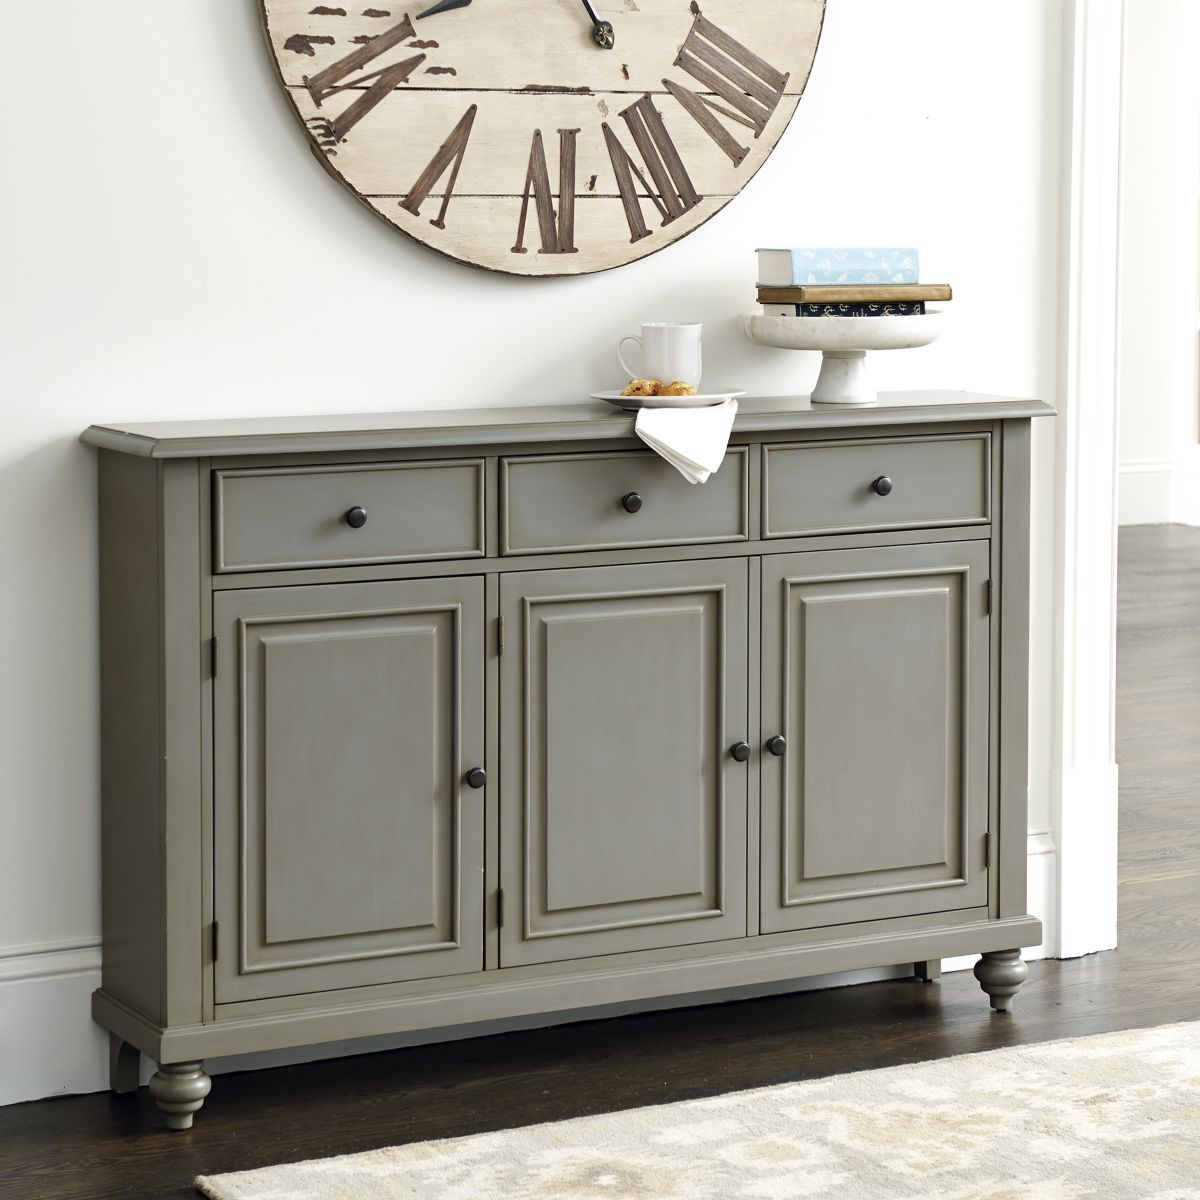 Martin 3 Door Console Table | Family Room Wall In 2019 Pertaining To Payton Serving Sideboards (View 13 of 20)